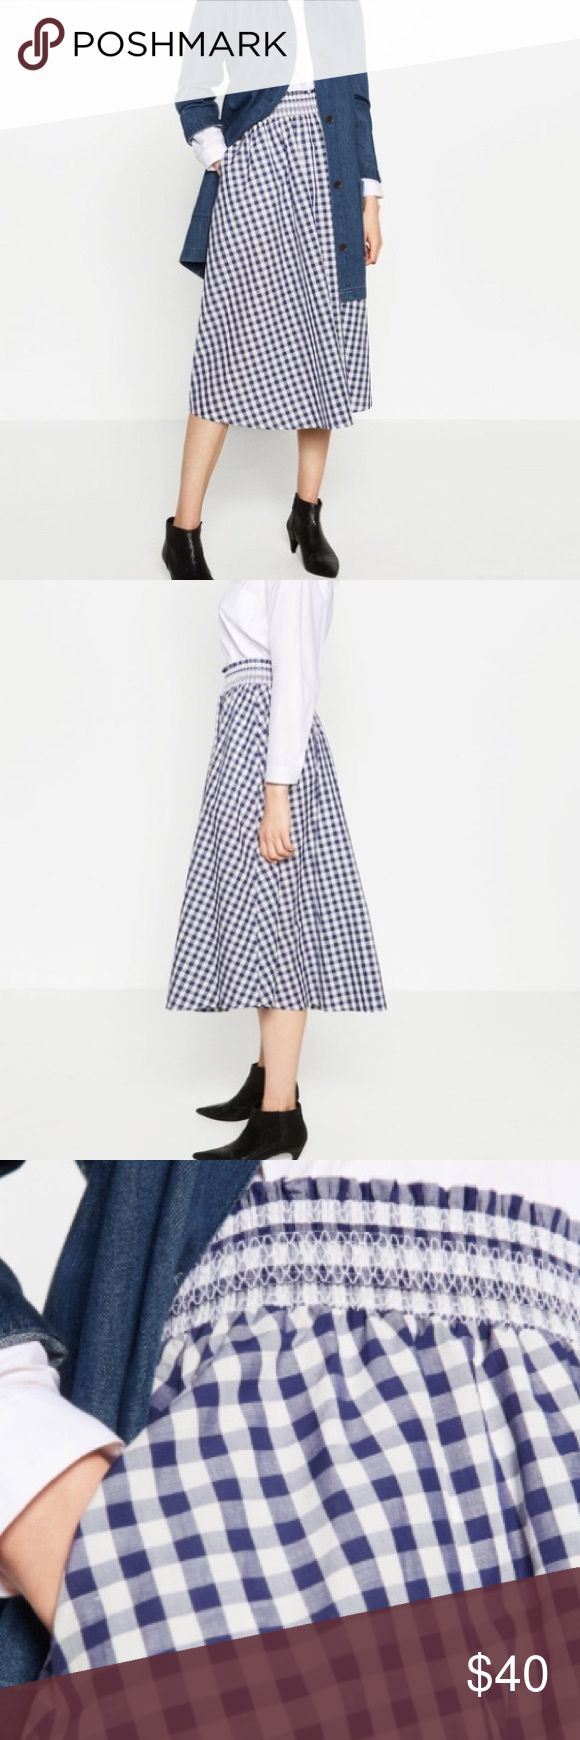 NWT Zara gingham checked blue white Midi skirt Beautiful gingham skirt with elastic waist. Great for summer and spring Zara Skirts Midi